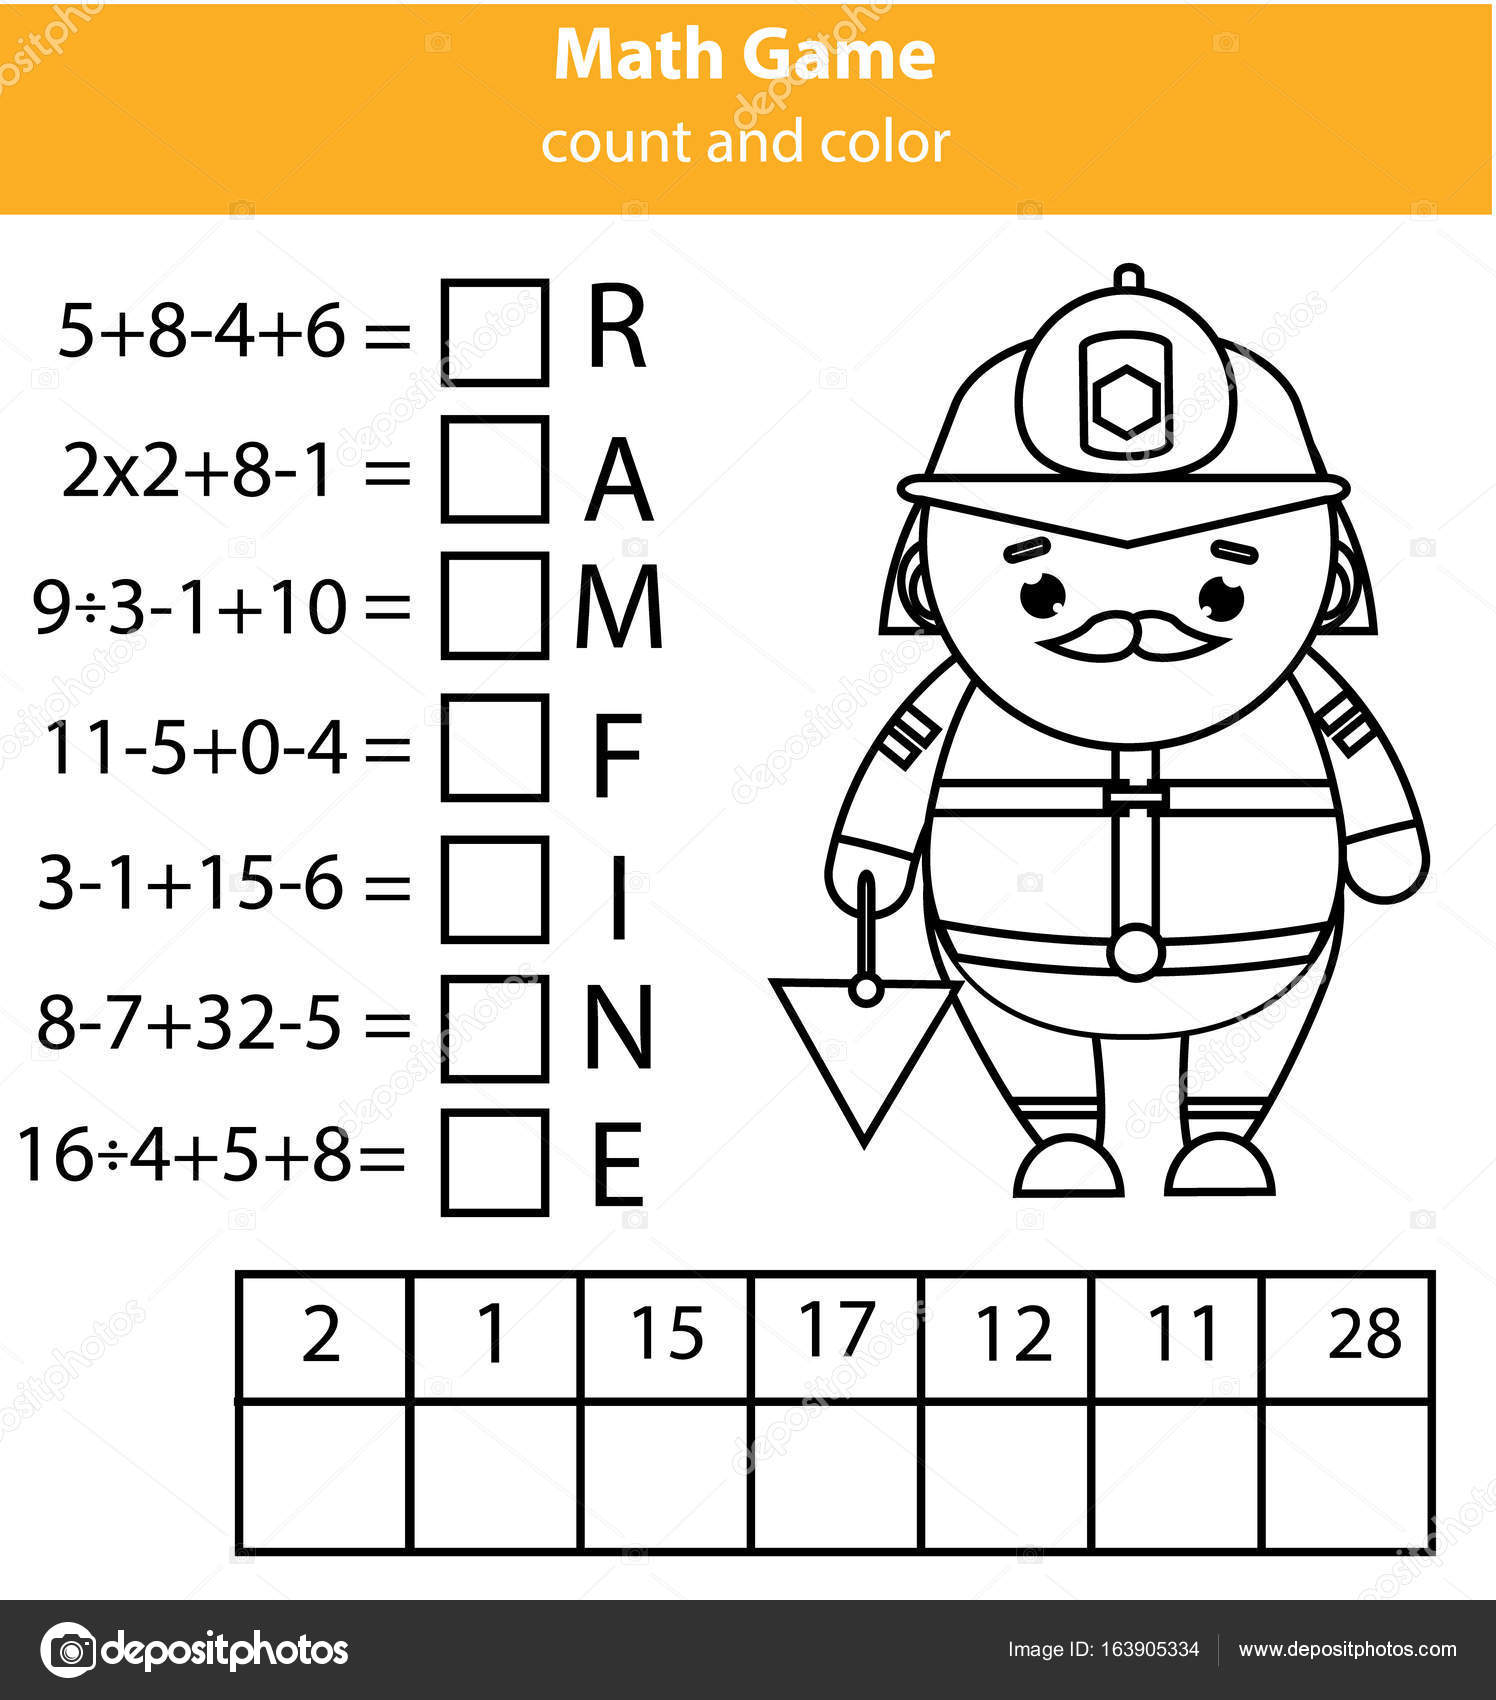 worksheet Equations Puzzle Worksheet words puzzle children educational game with mathematics equations counting and letters learning numbers vocabulary wor